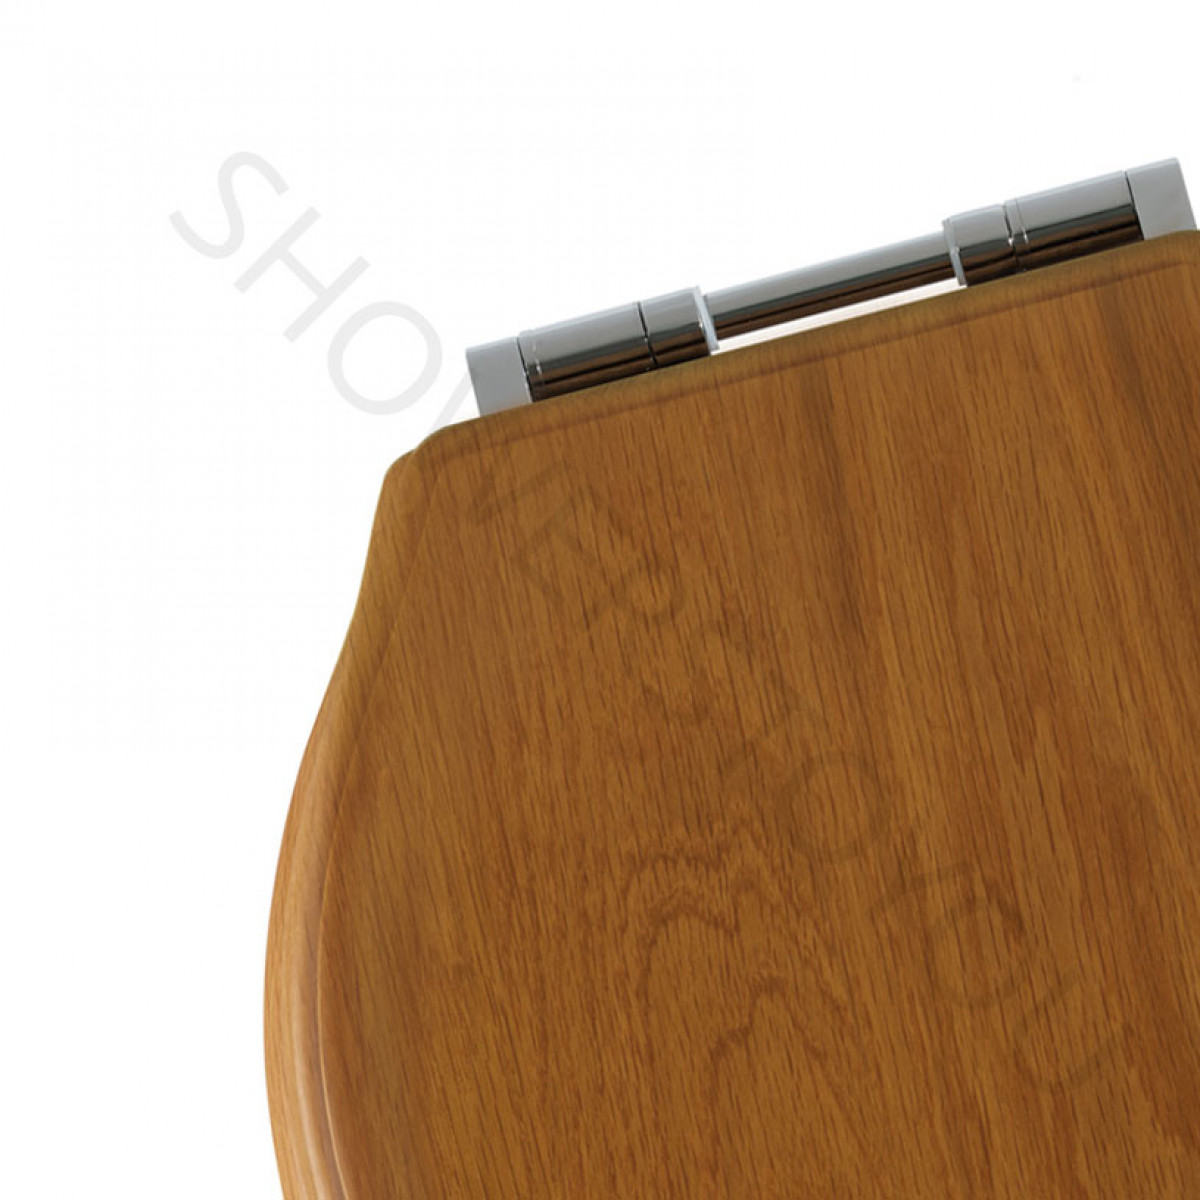 solid wood soft close toilet seat. Exciting Dark Wood Soft Close Toilet Seat Photos Cool sophisticated  Contemporary Best fruitesborras com 100 Images